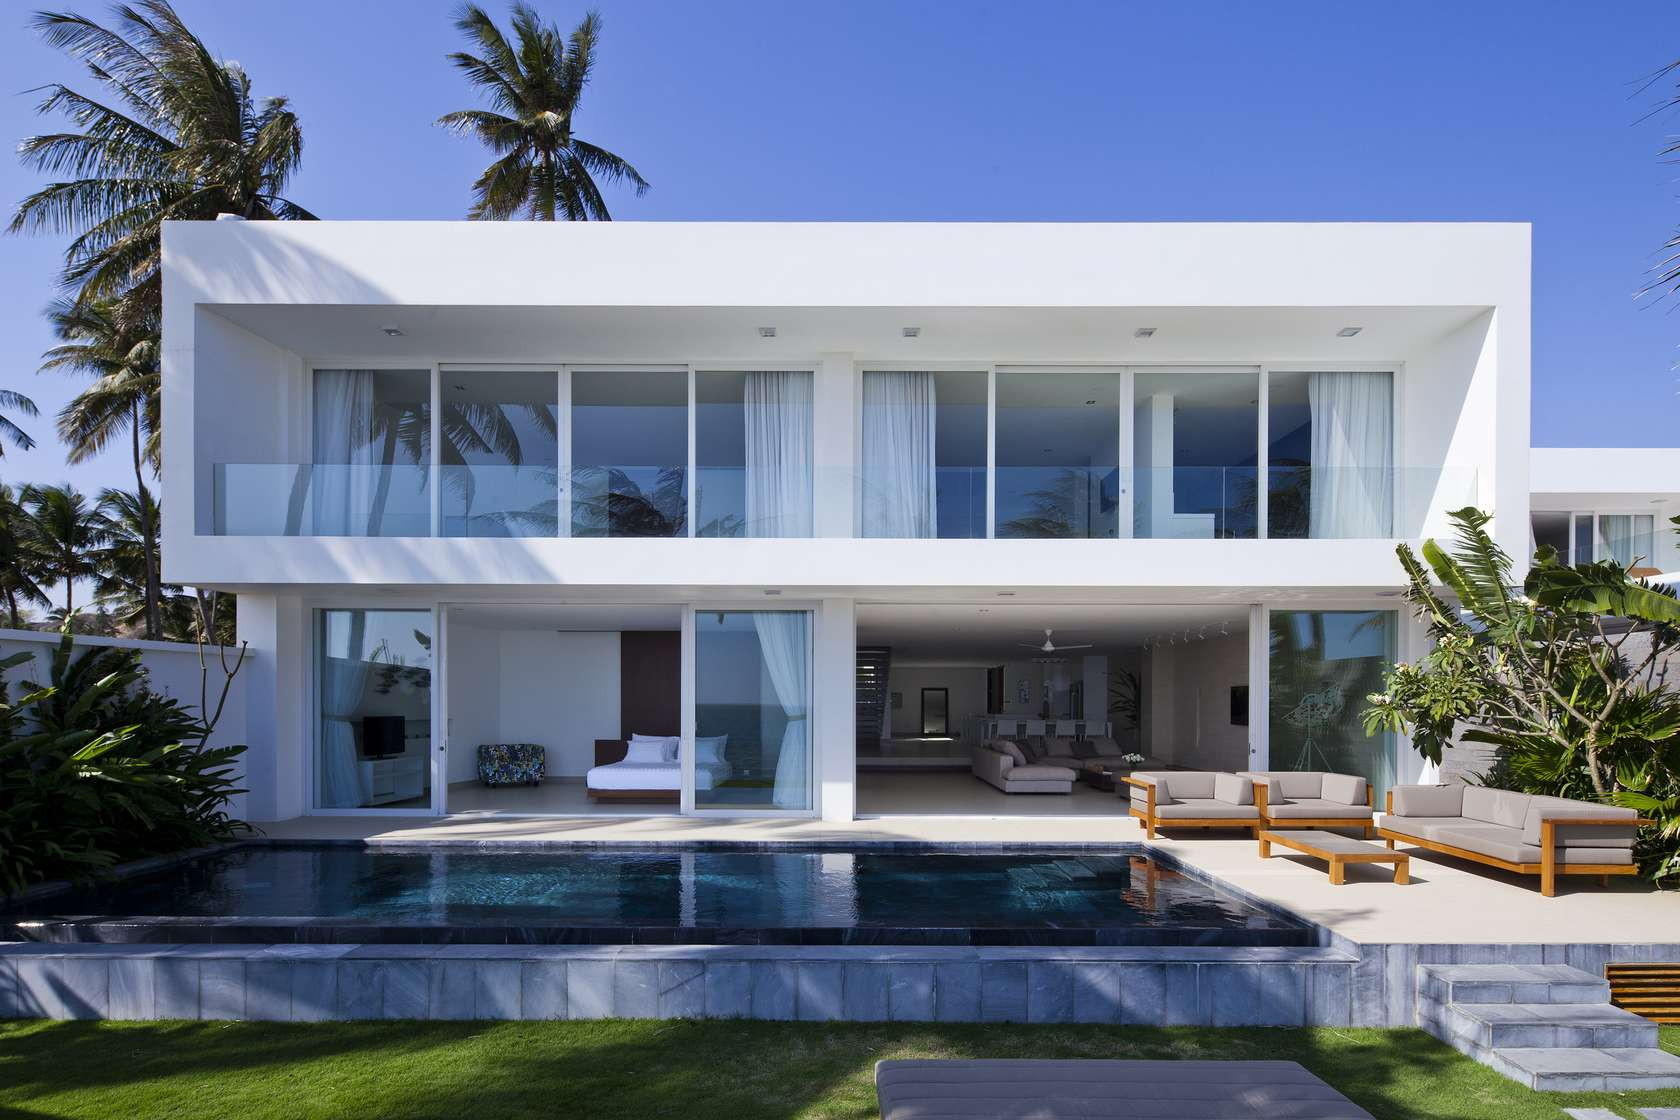 Private beach villas offer spectacular ocean views and for Seaside house plans designs